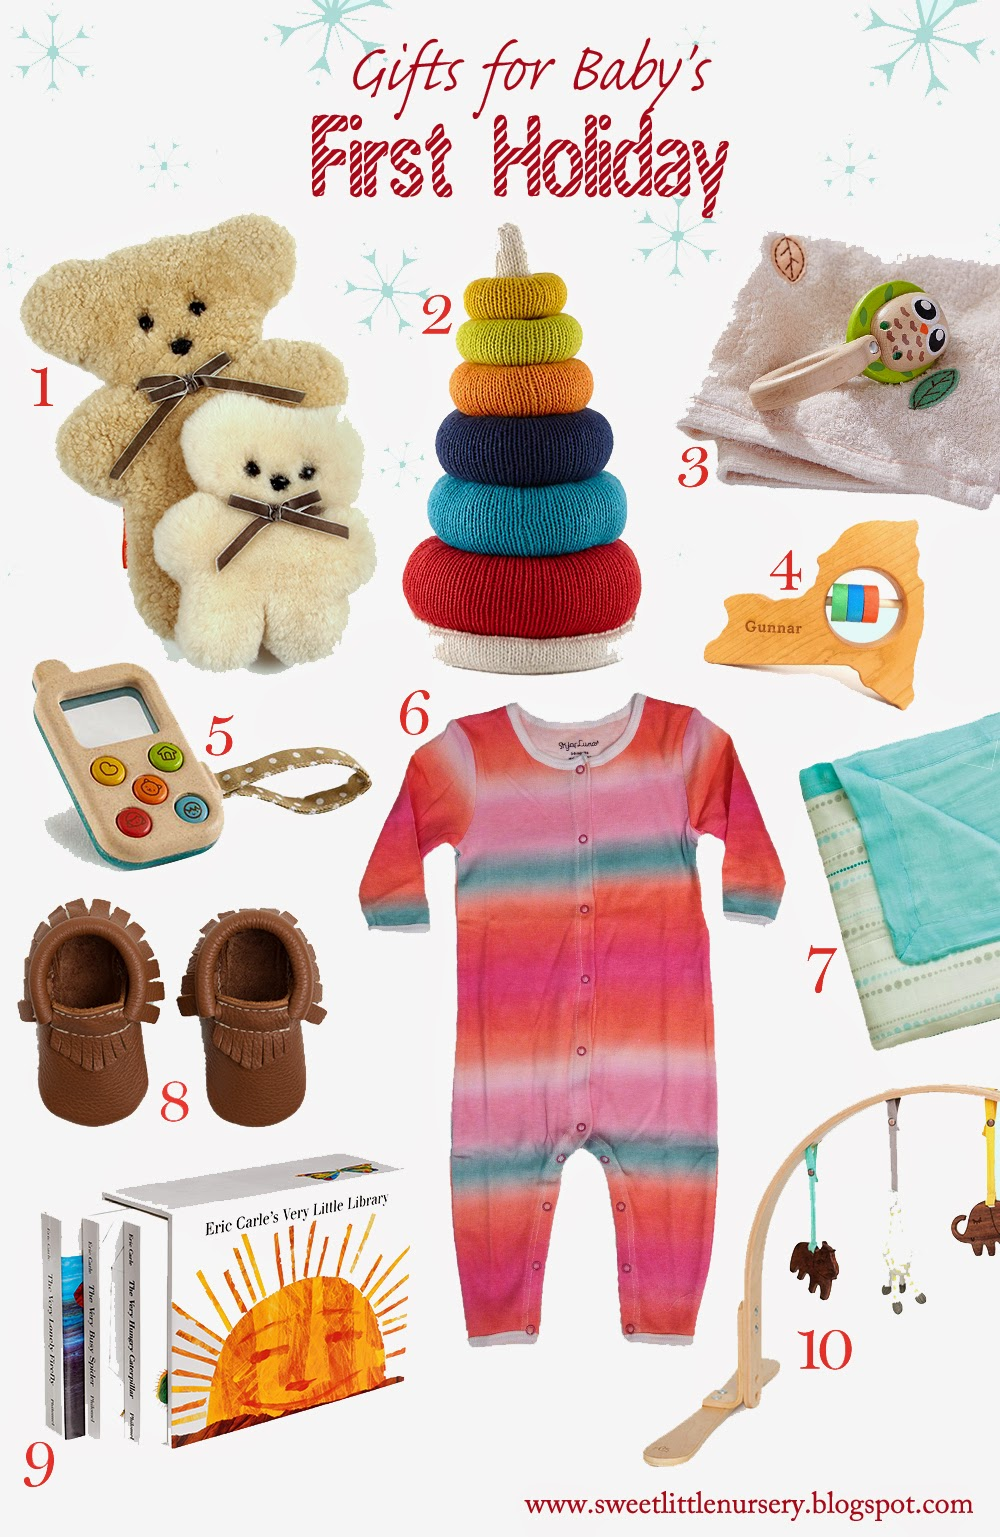 10 Gifts for Baby's First Holiday